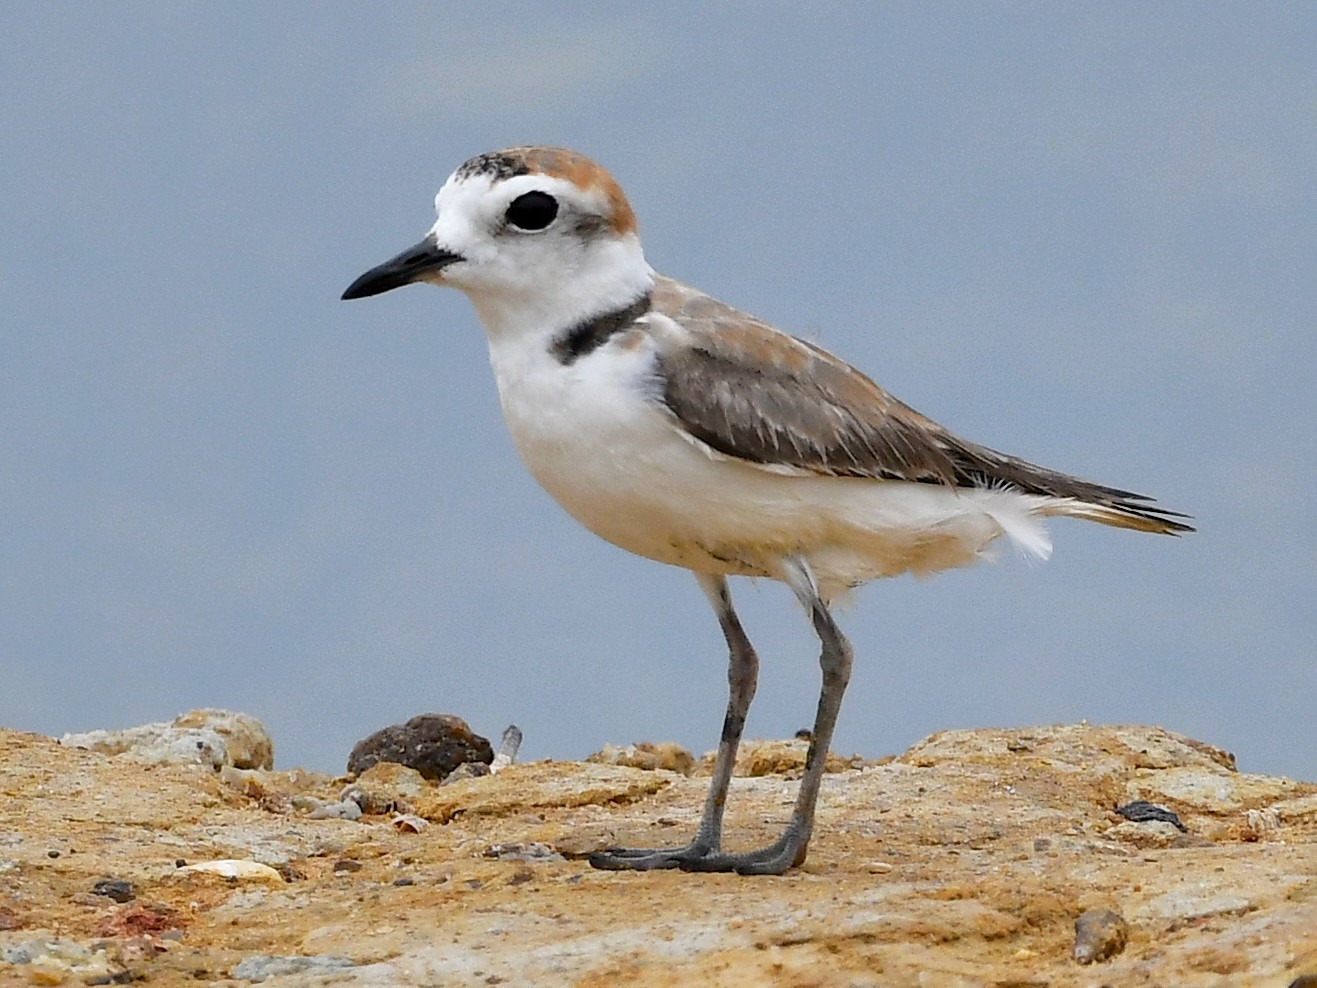 White-faced Plover - Ting-Wei (廷維) HUNG (洪)